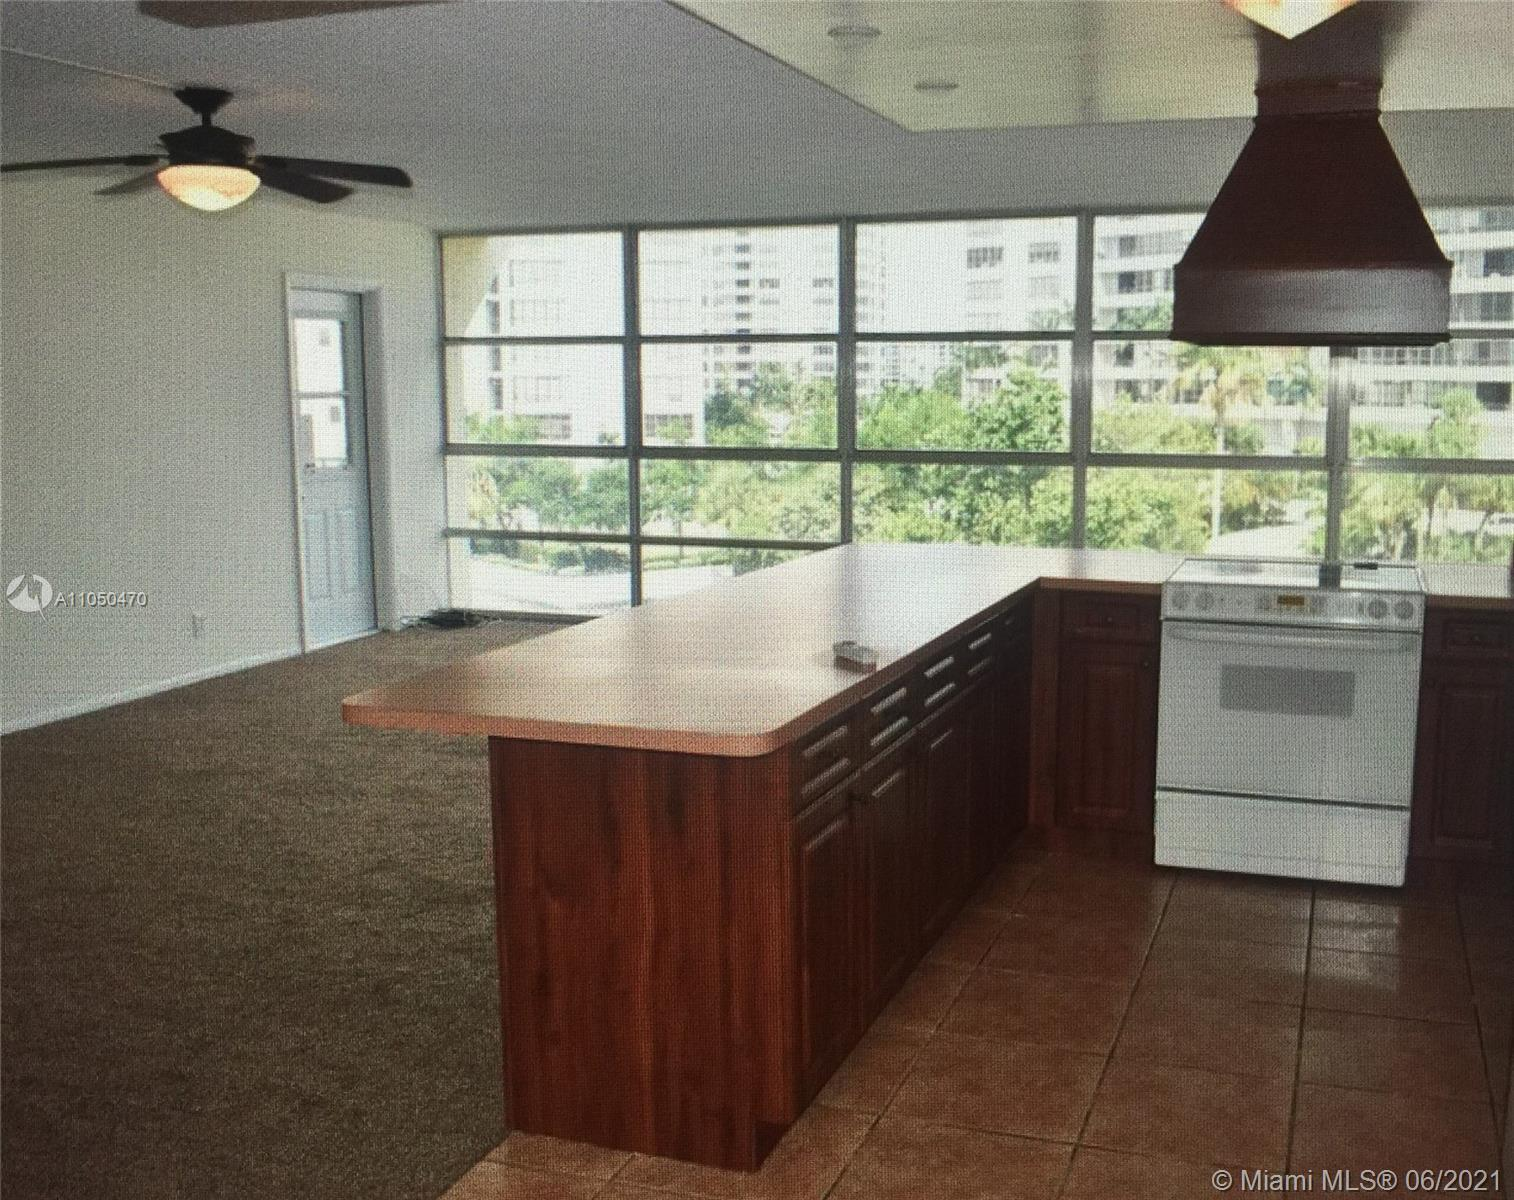 This is a spacious updated top floor corner unit, situated within a clean building. Brand new carpet